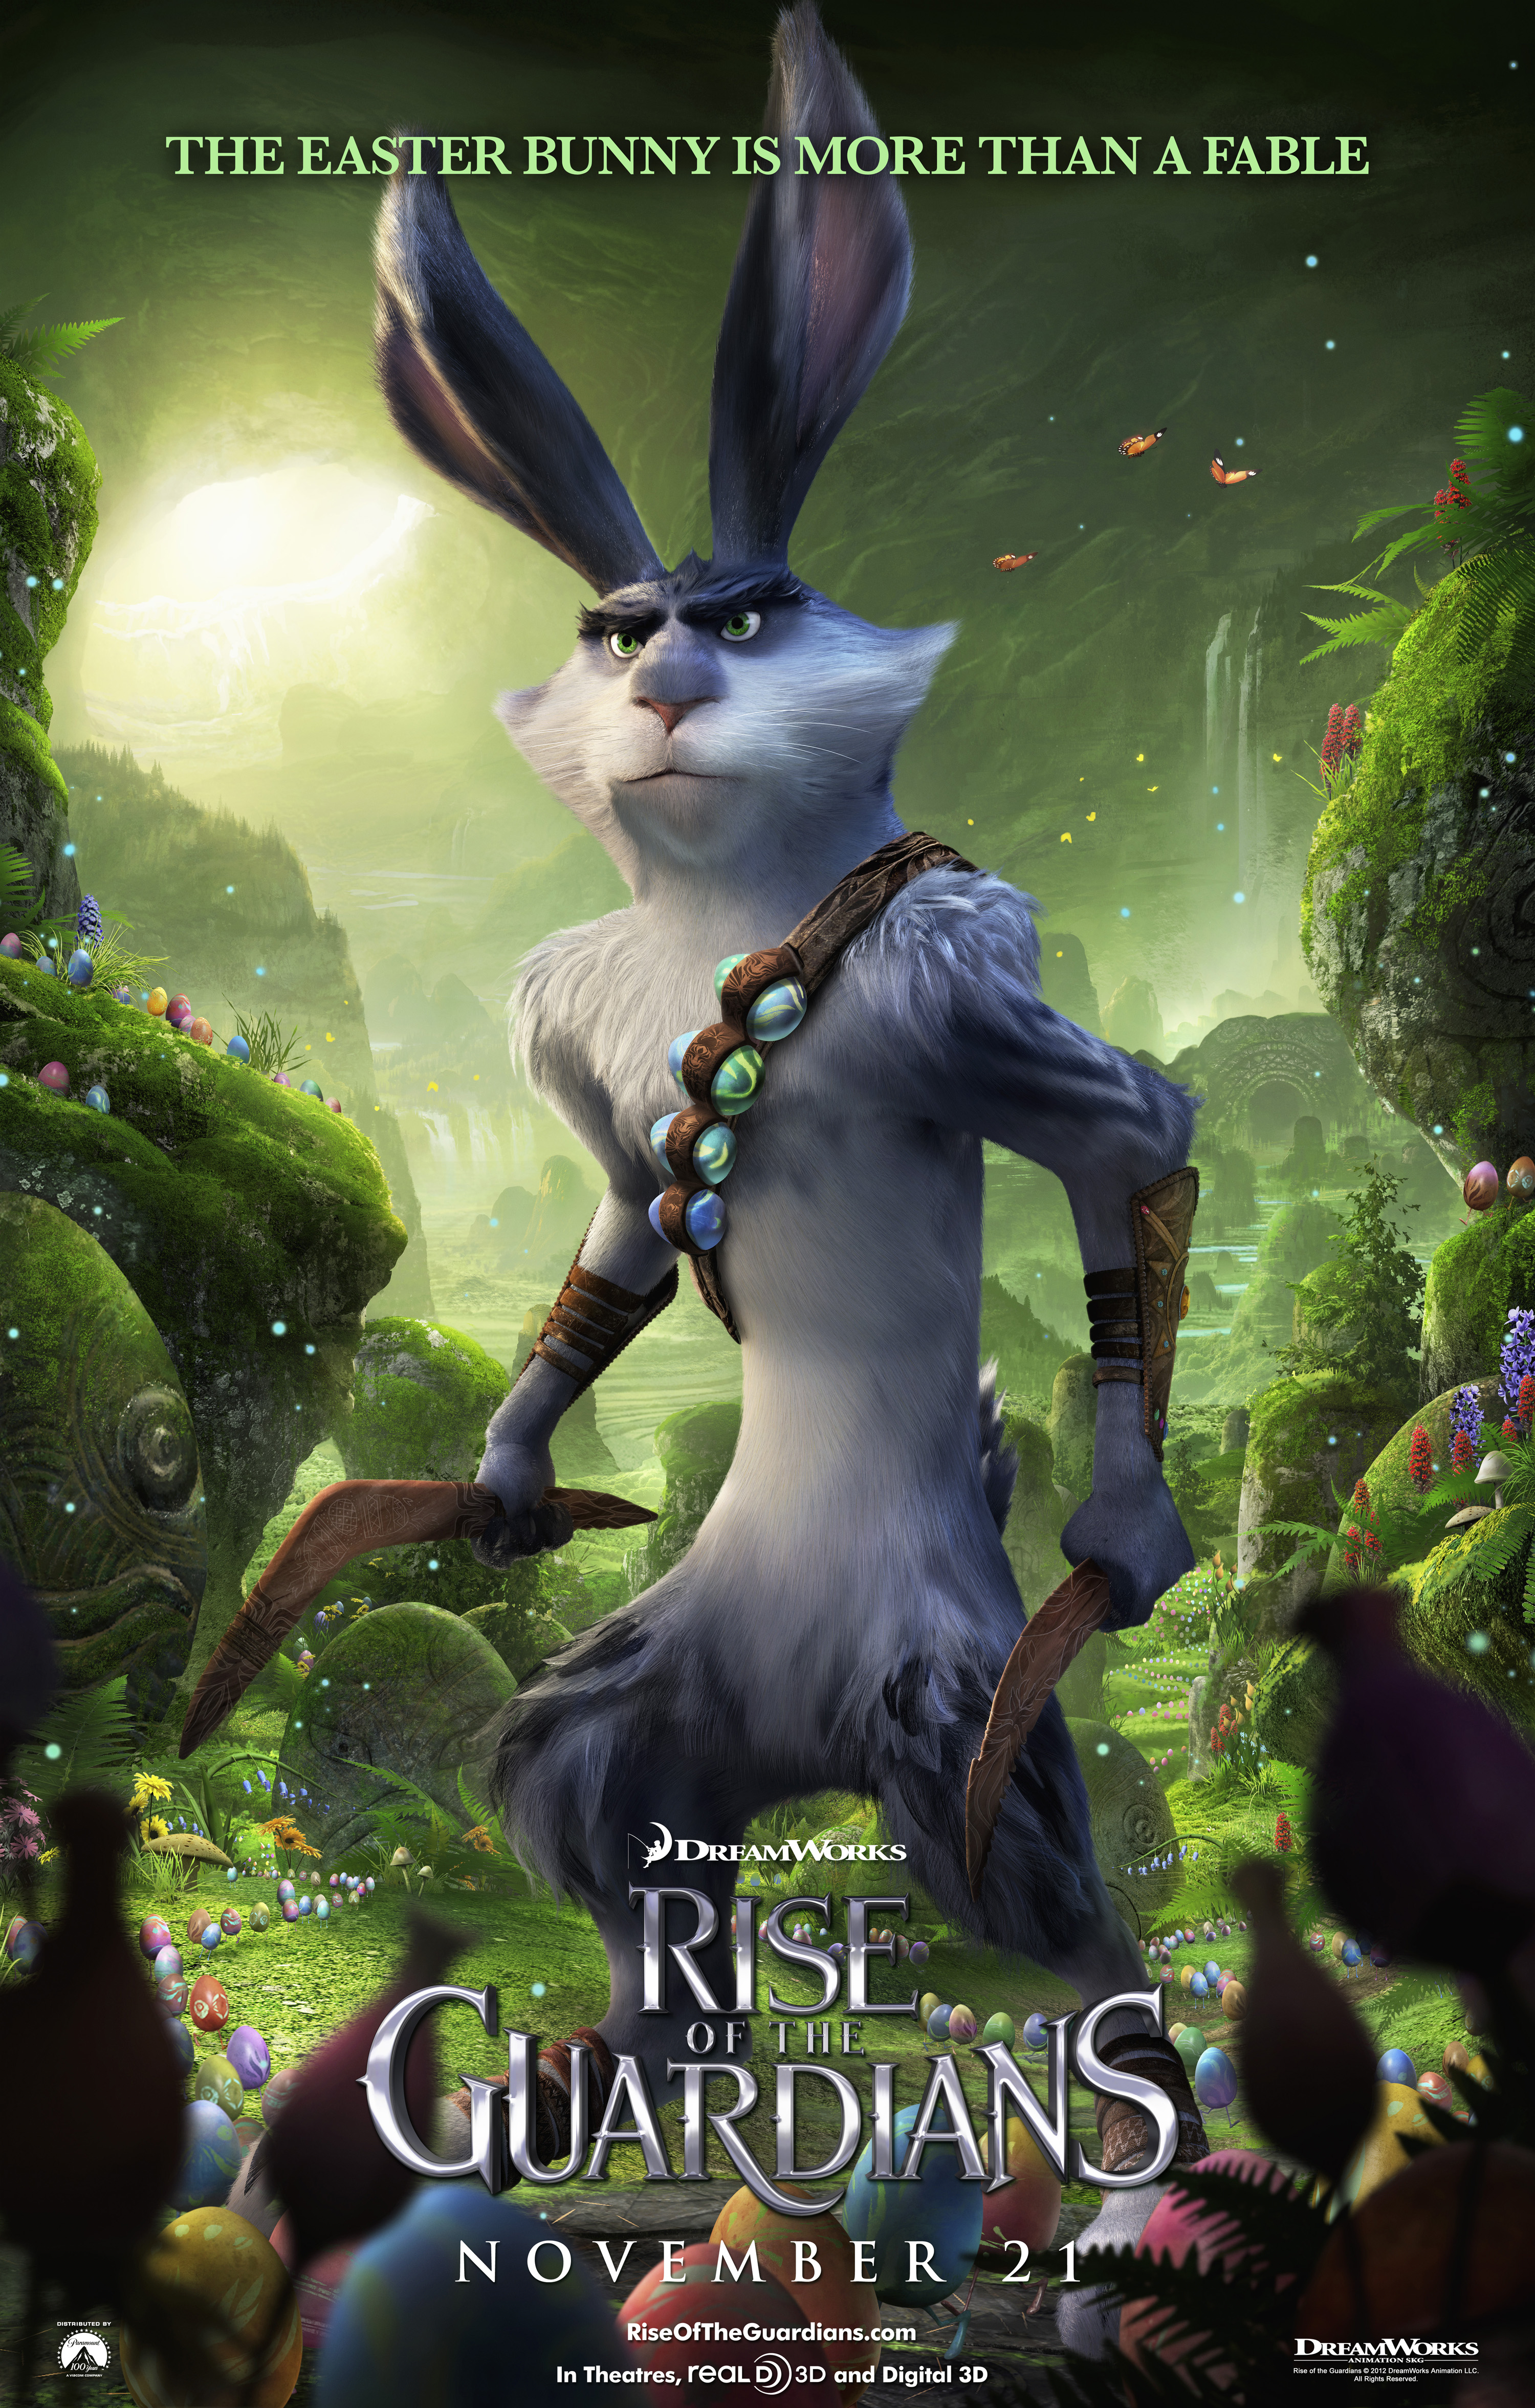 RISE OF THE GUARDIANS Featurette Highlights Hugh Jackman's Character